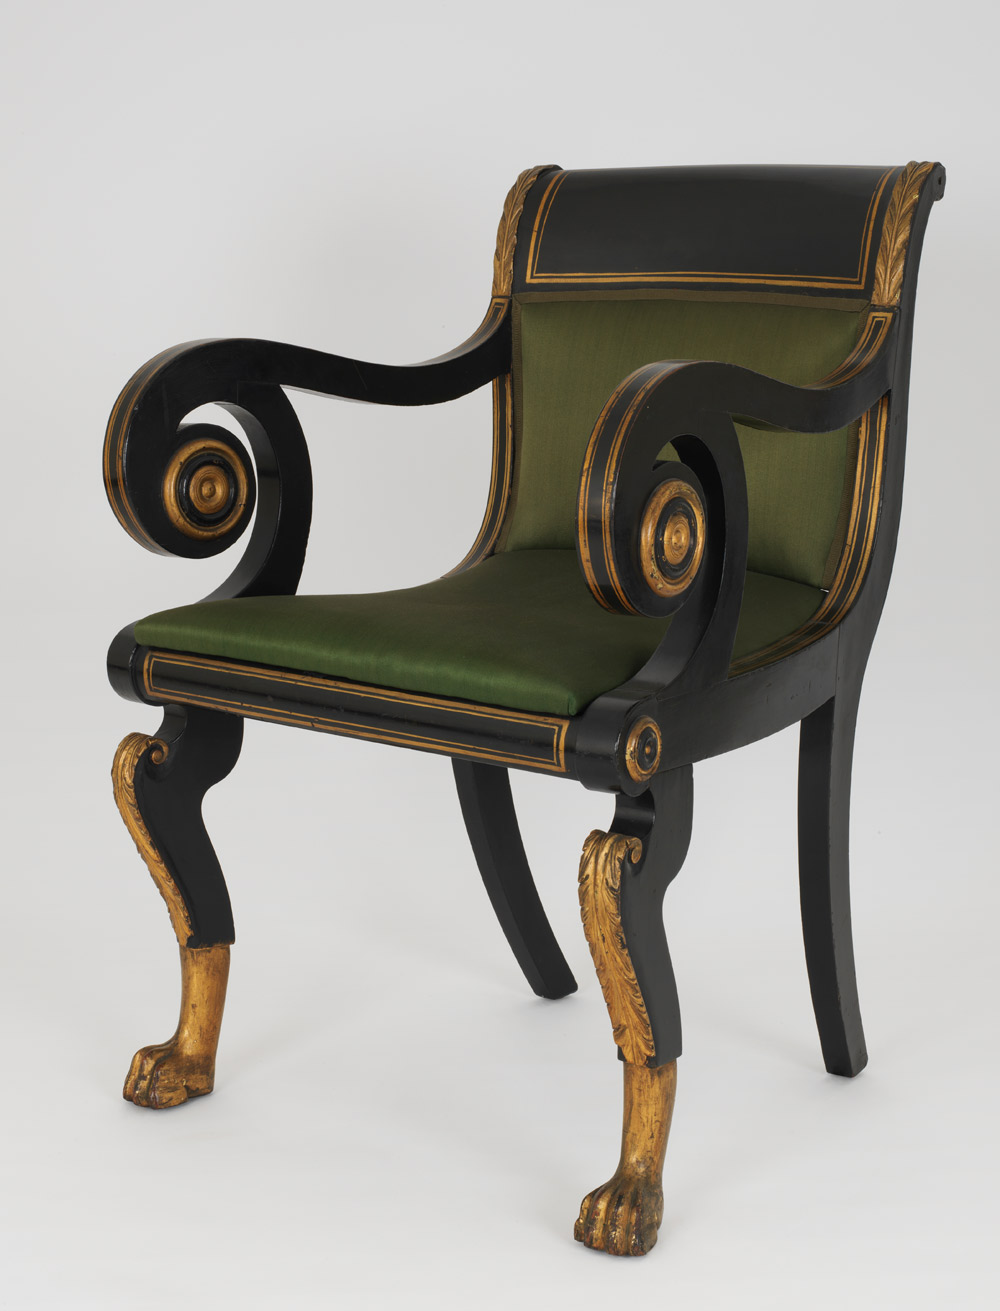 Photograph of a Duncan Phyfe Armchair